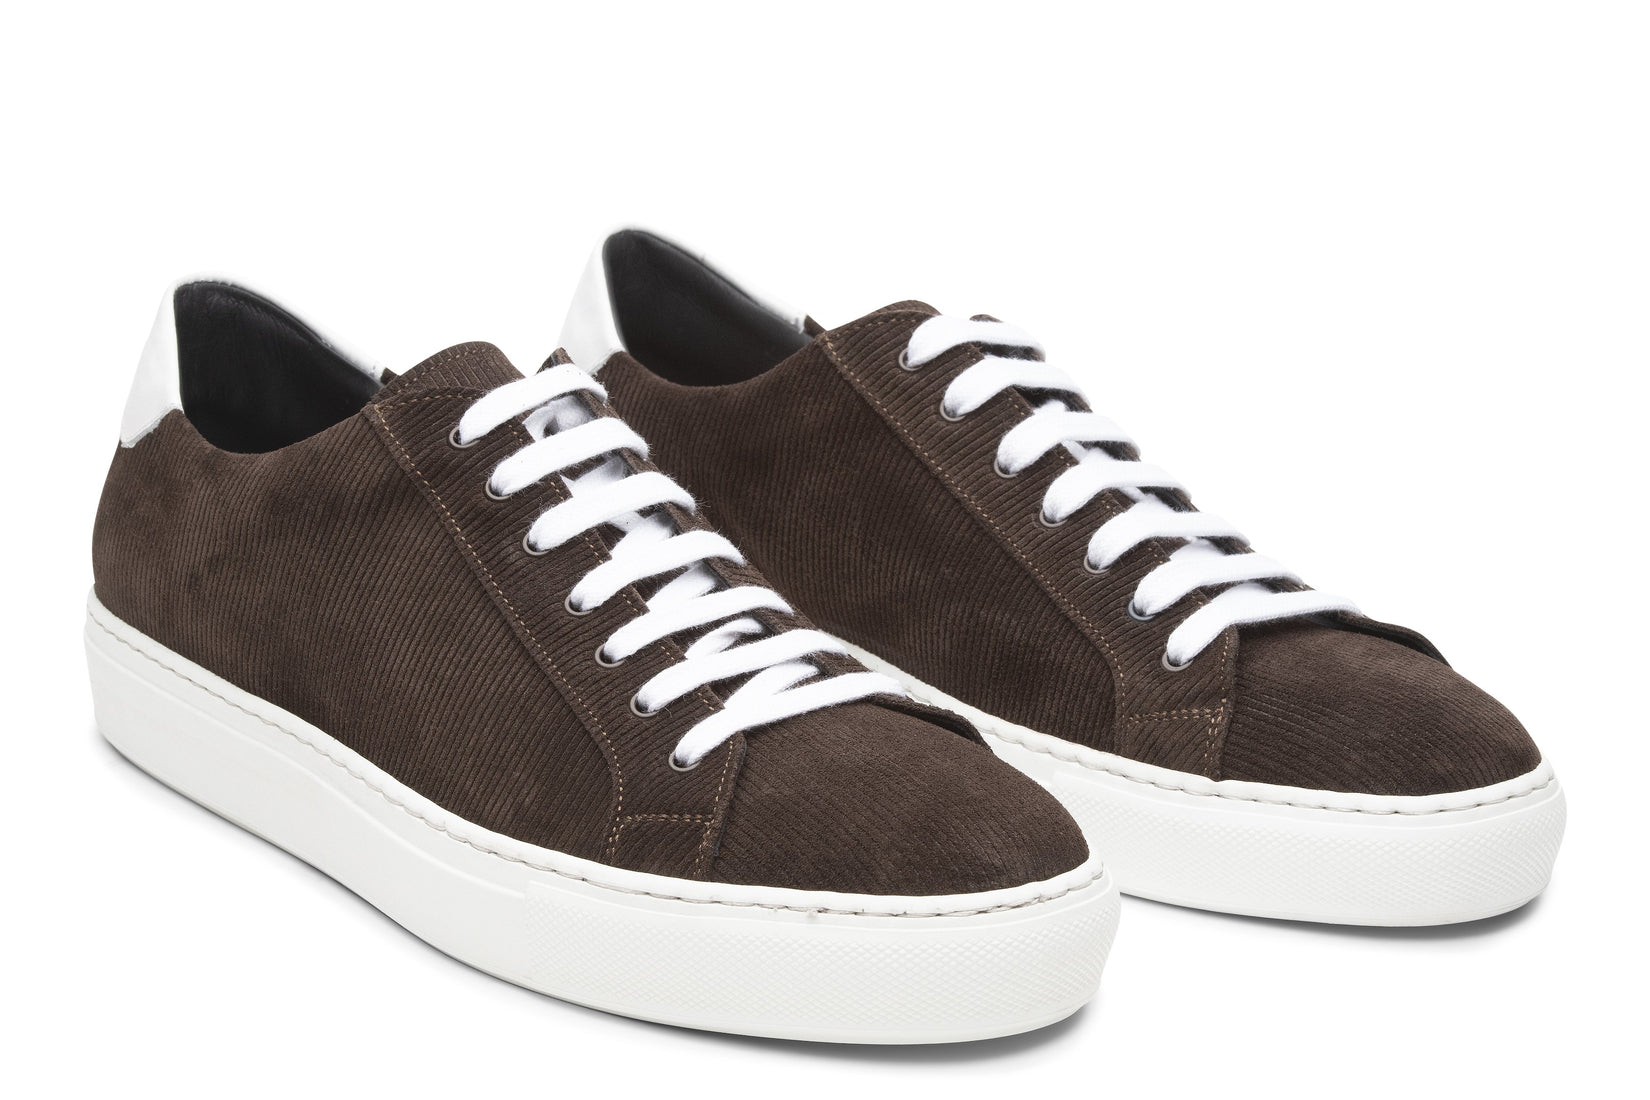 Saturday Lace-Up Sneaker in Chocolate